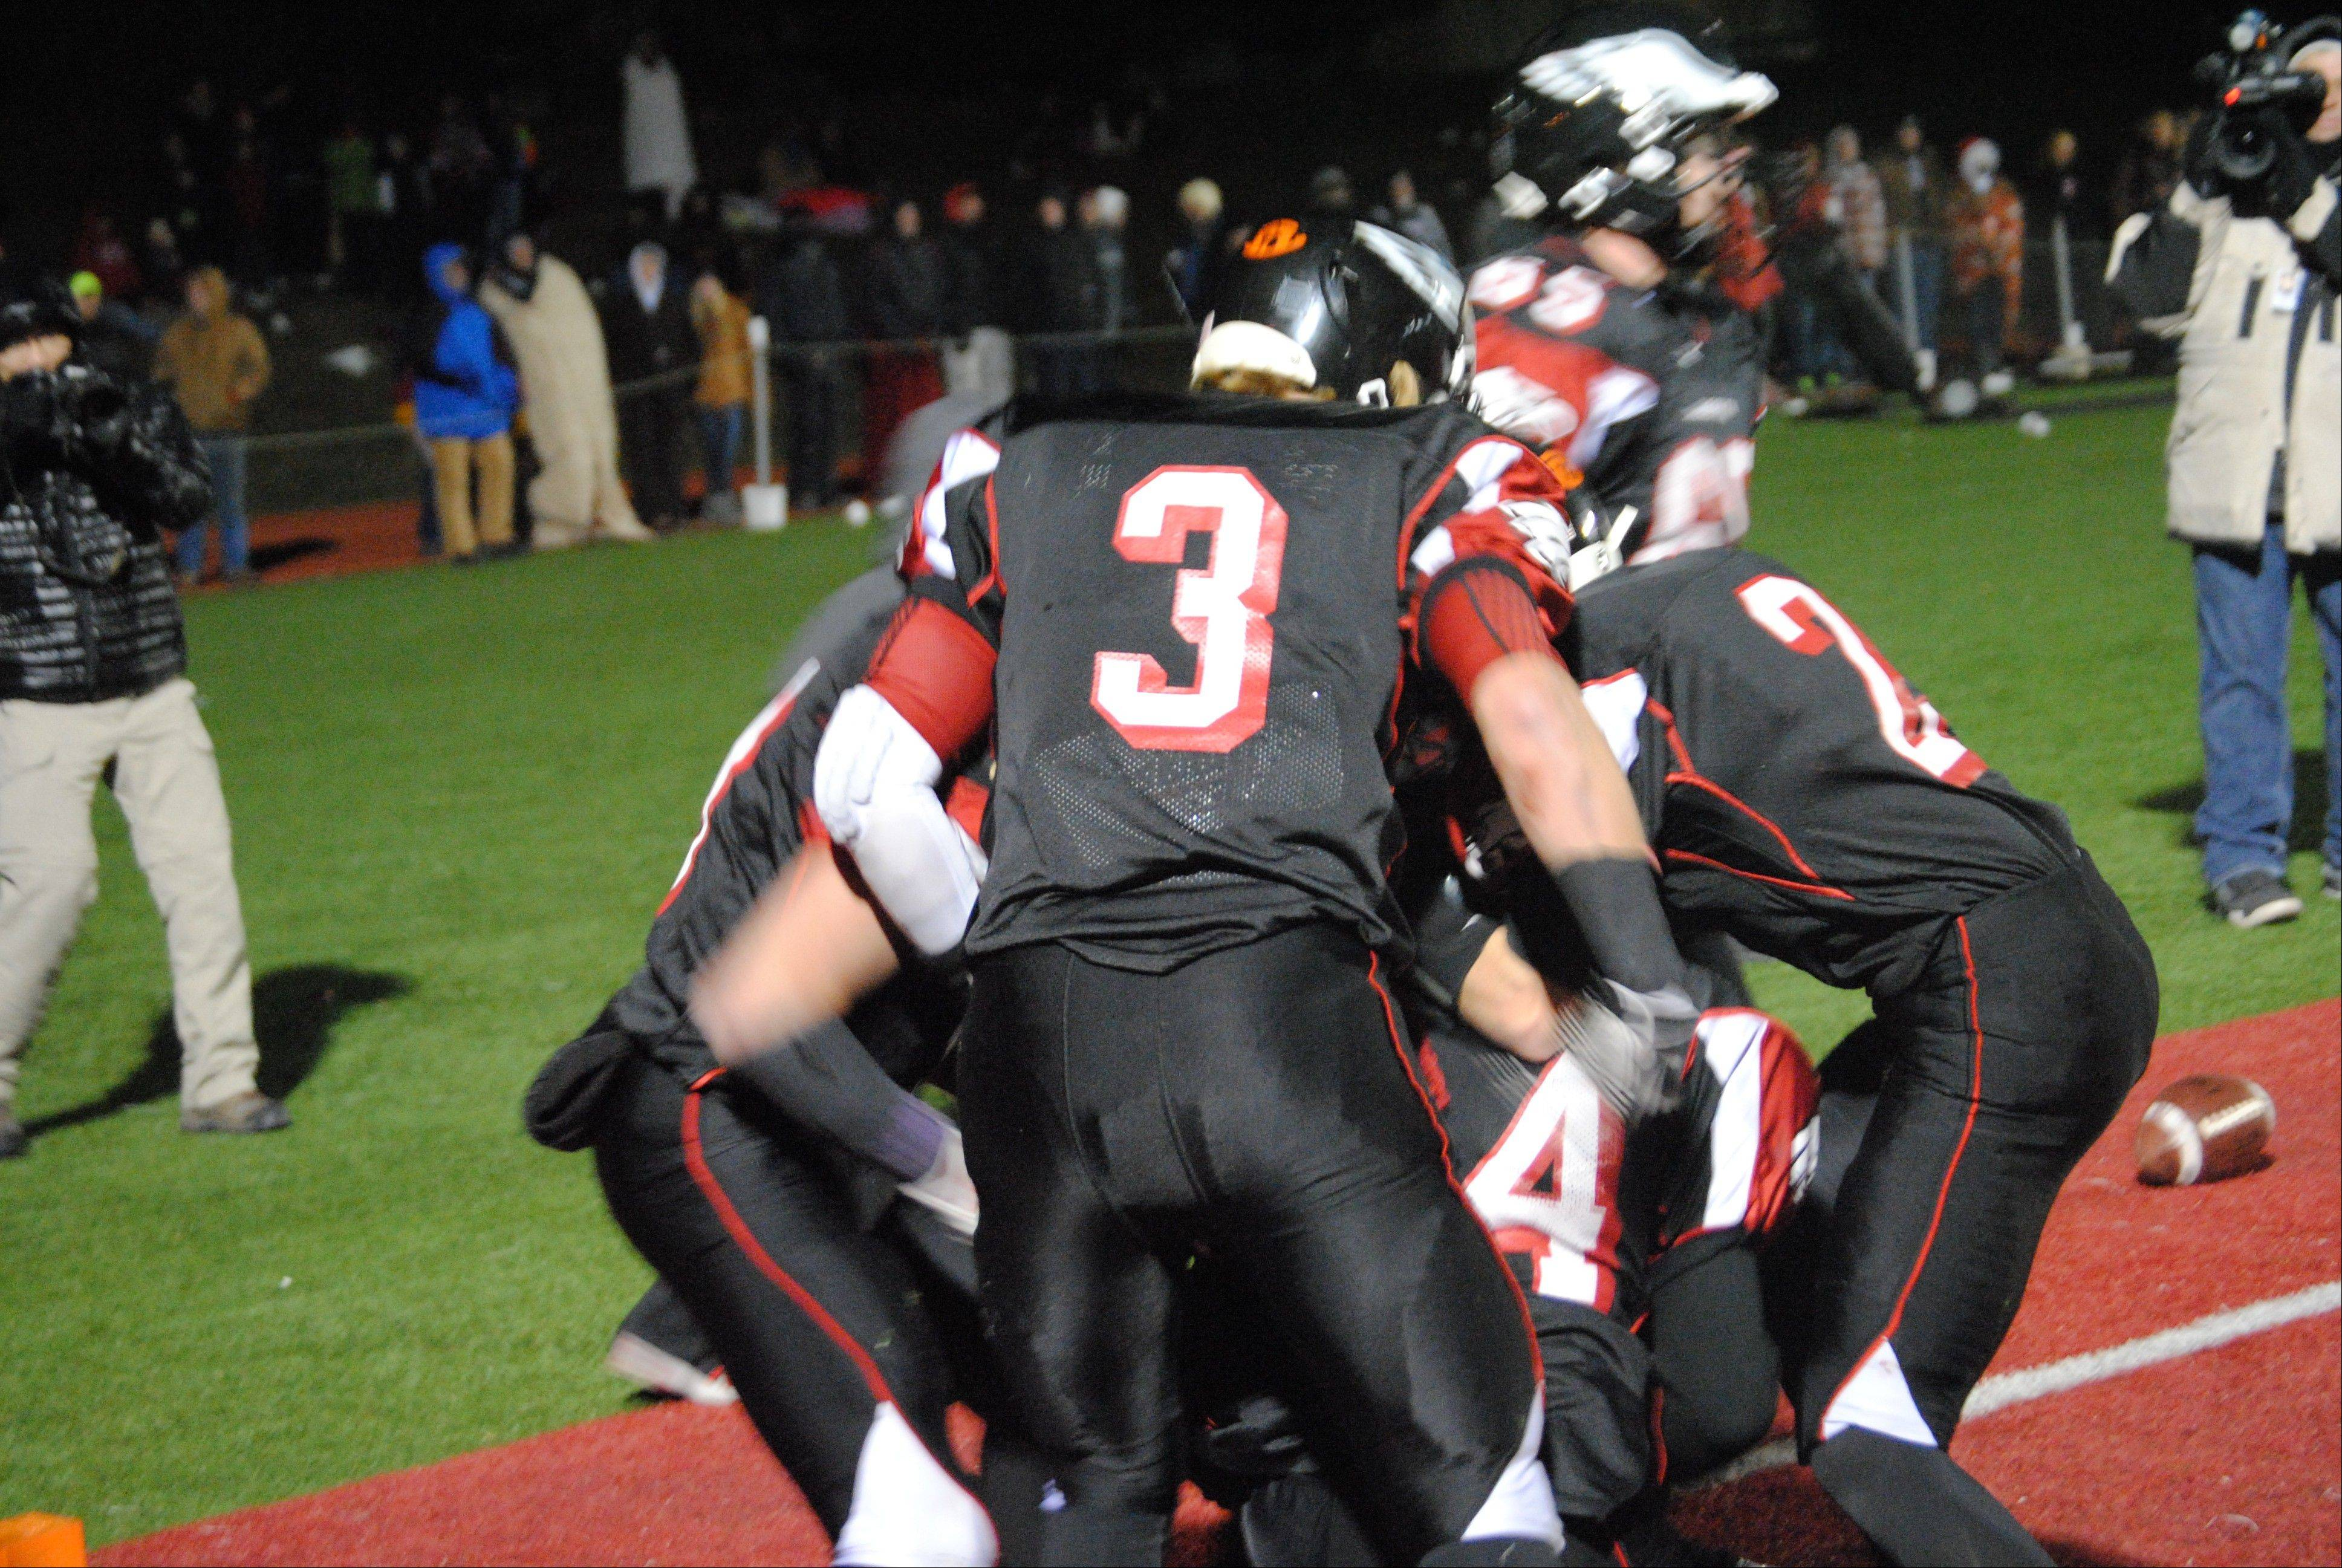 Aurora Christian tailback Legend Smith (44) getting mobbed by jubilant teammates after his 10-yard TD reception that gave the Eagles a 26-21 lead over Stillman Valley with 2:27 remaining during Saturday's 3A state semifinals in Aurora. Stillman Valley rallied for a 28-26 win.